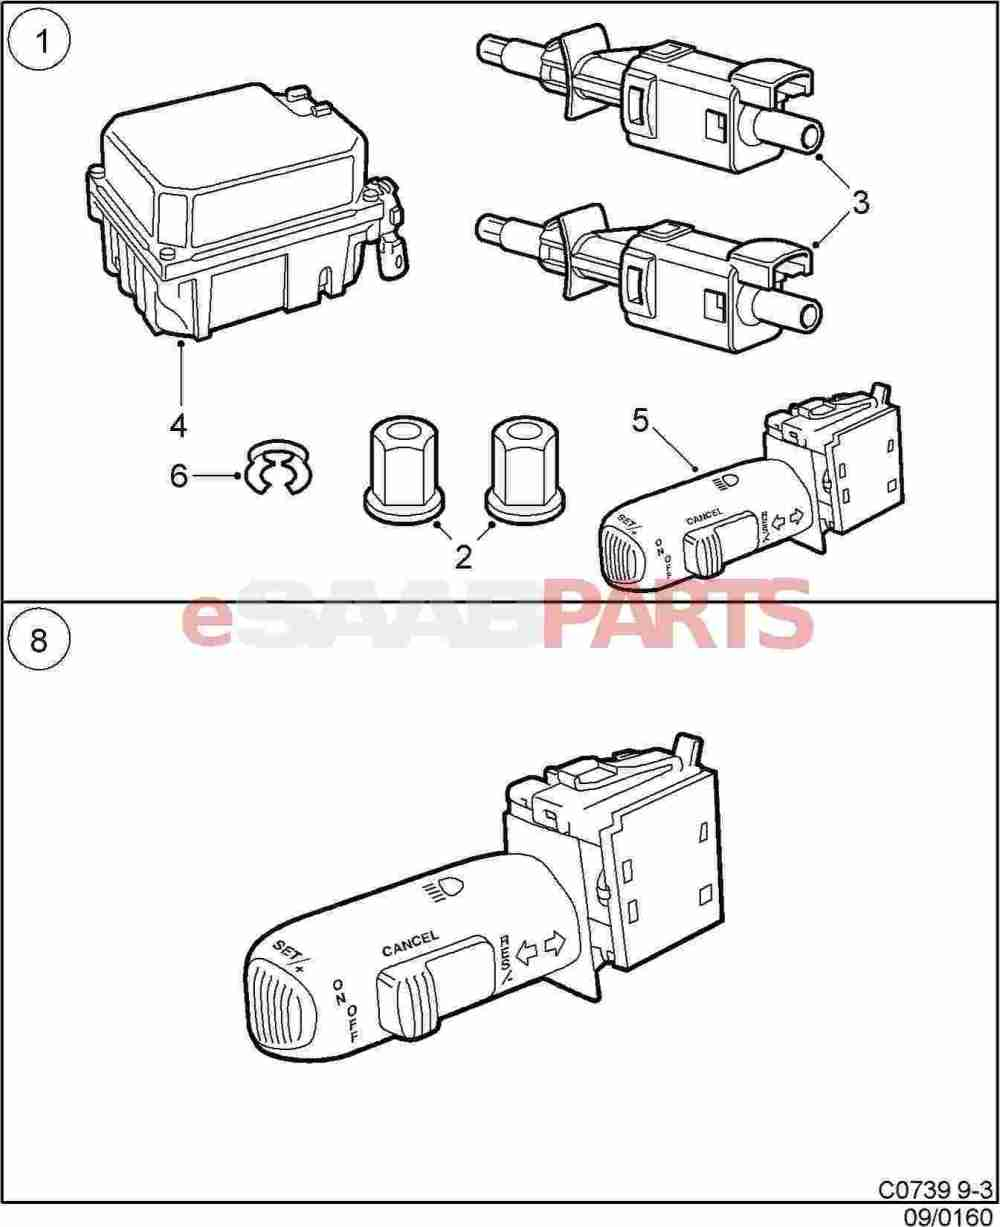 medium resolution of 400130548 saab cruise control genuine saab parts from esaabparts com diagram fitment